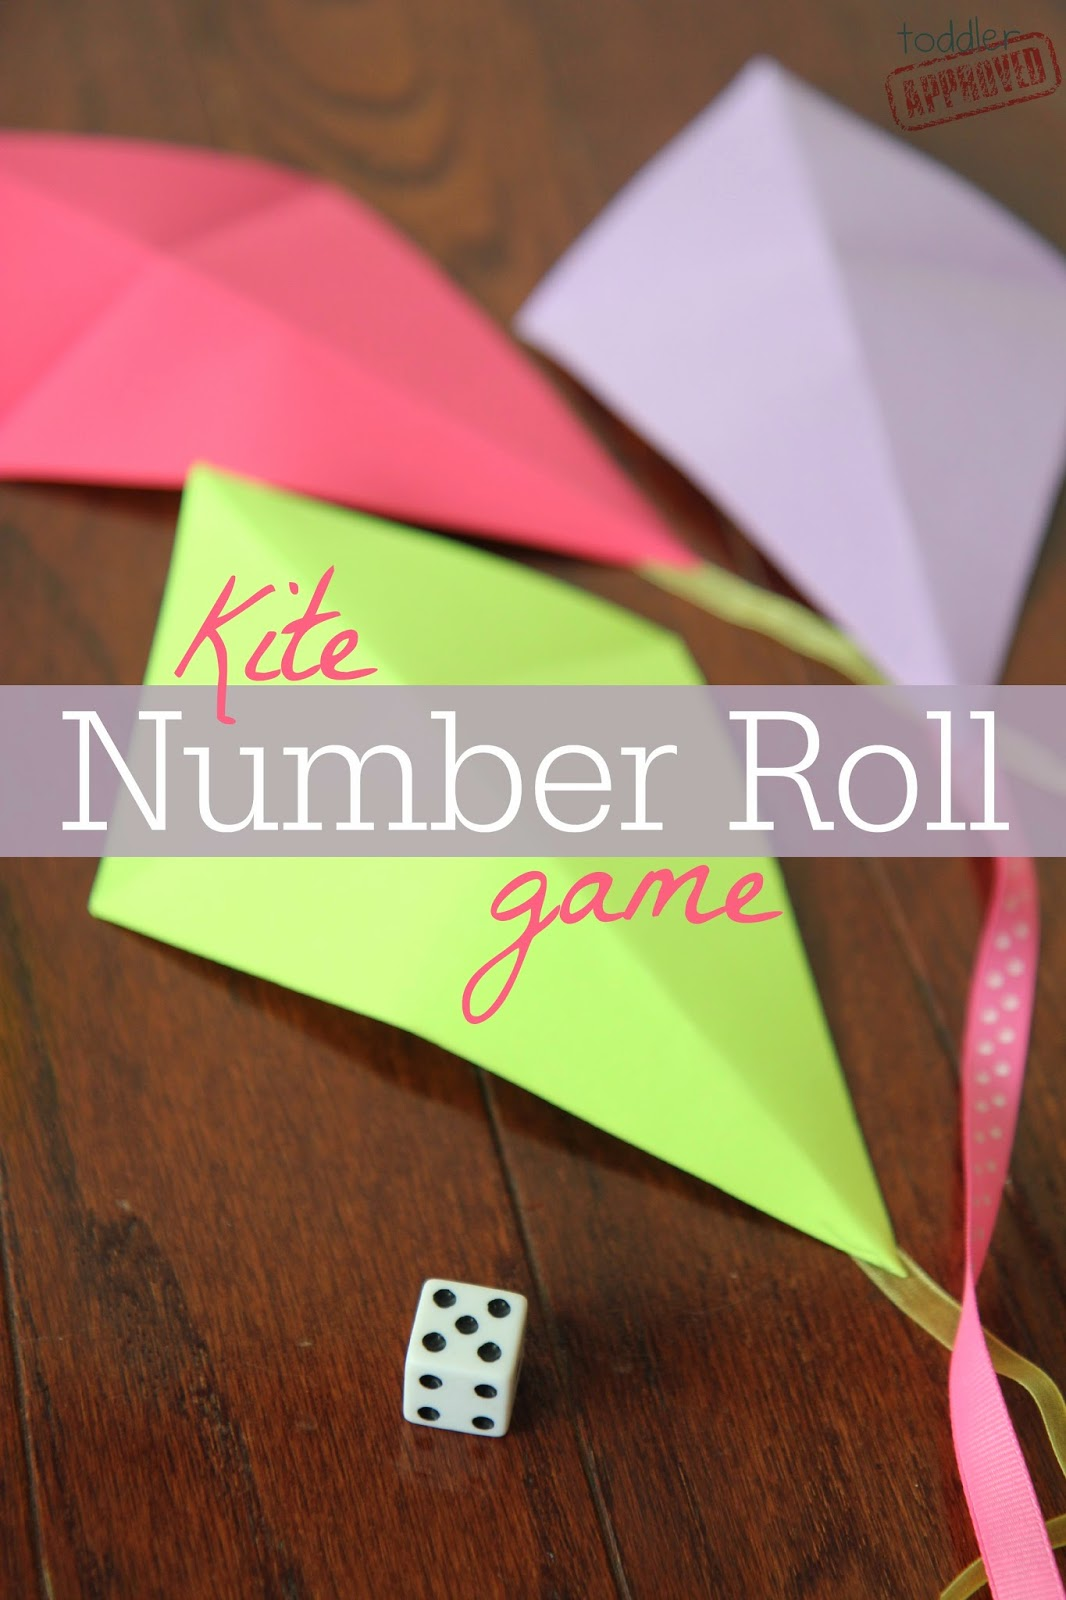 Toddler Approved Preschool Math Kite Number Roll Game